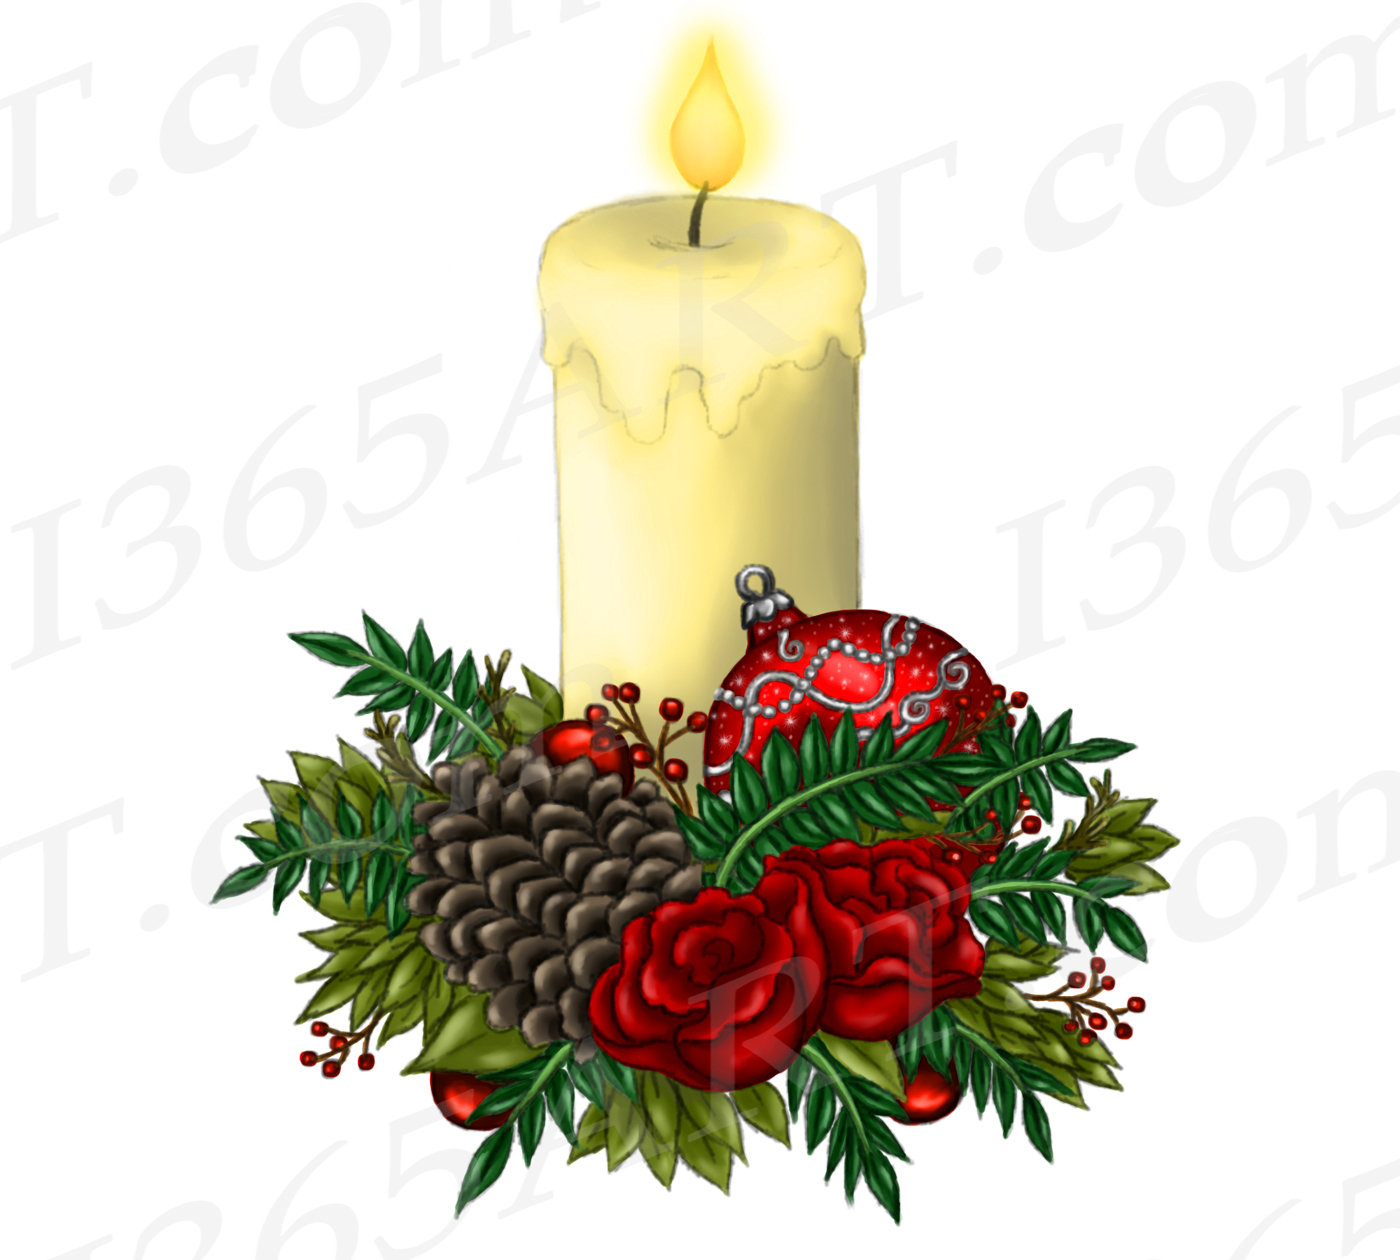 Christmas Graphics Png.Christmas Candle Clipart Watercolor Candle Png Graphic